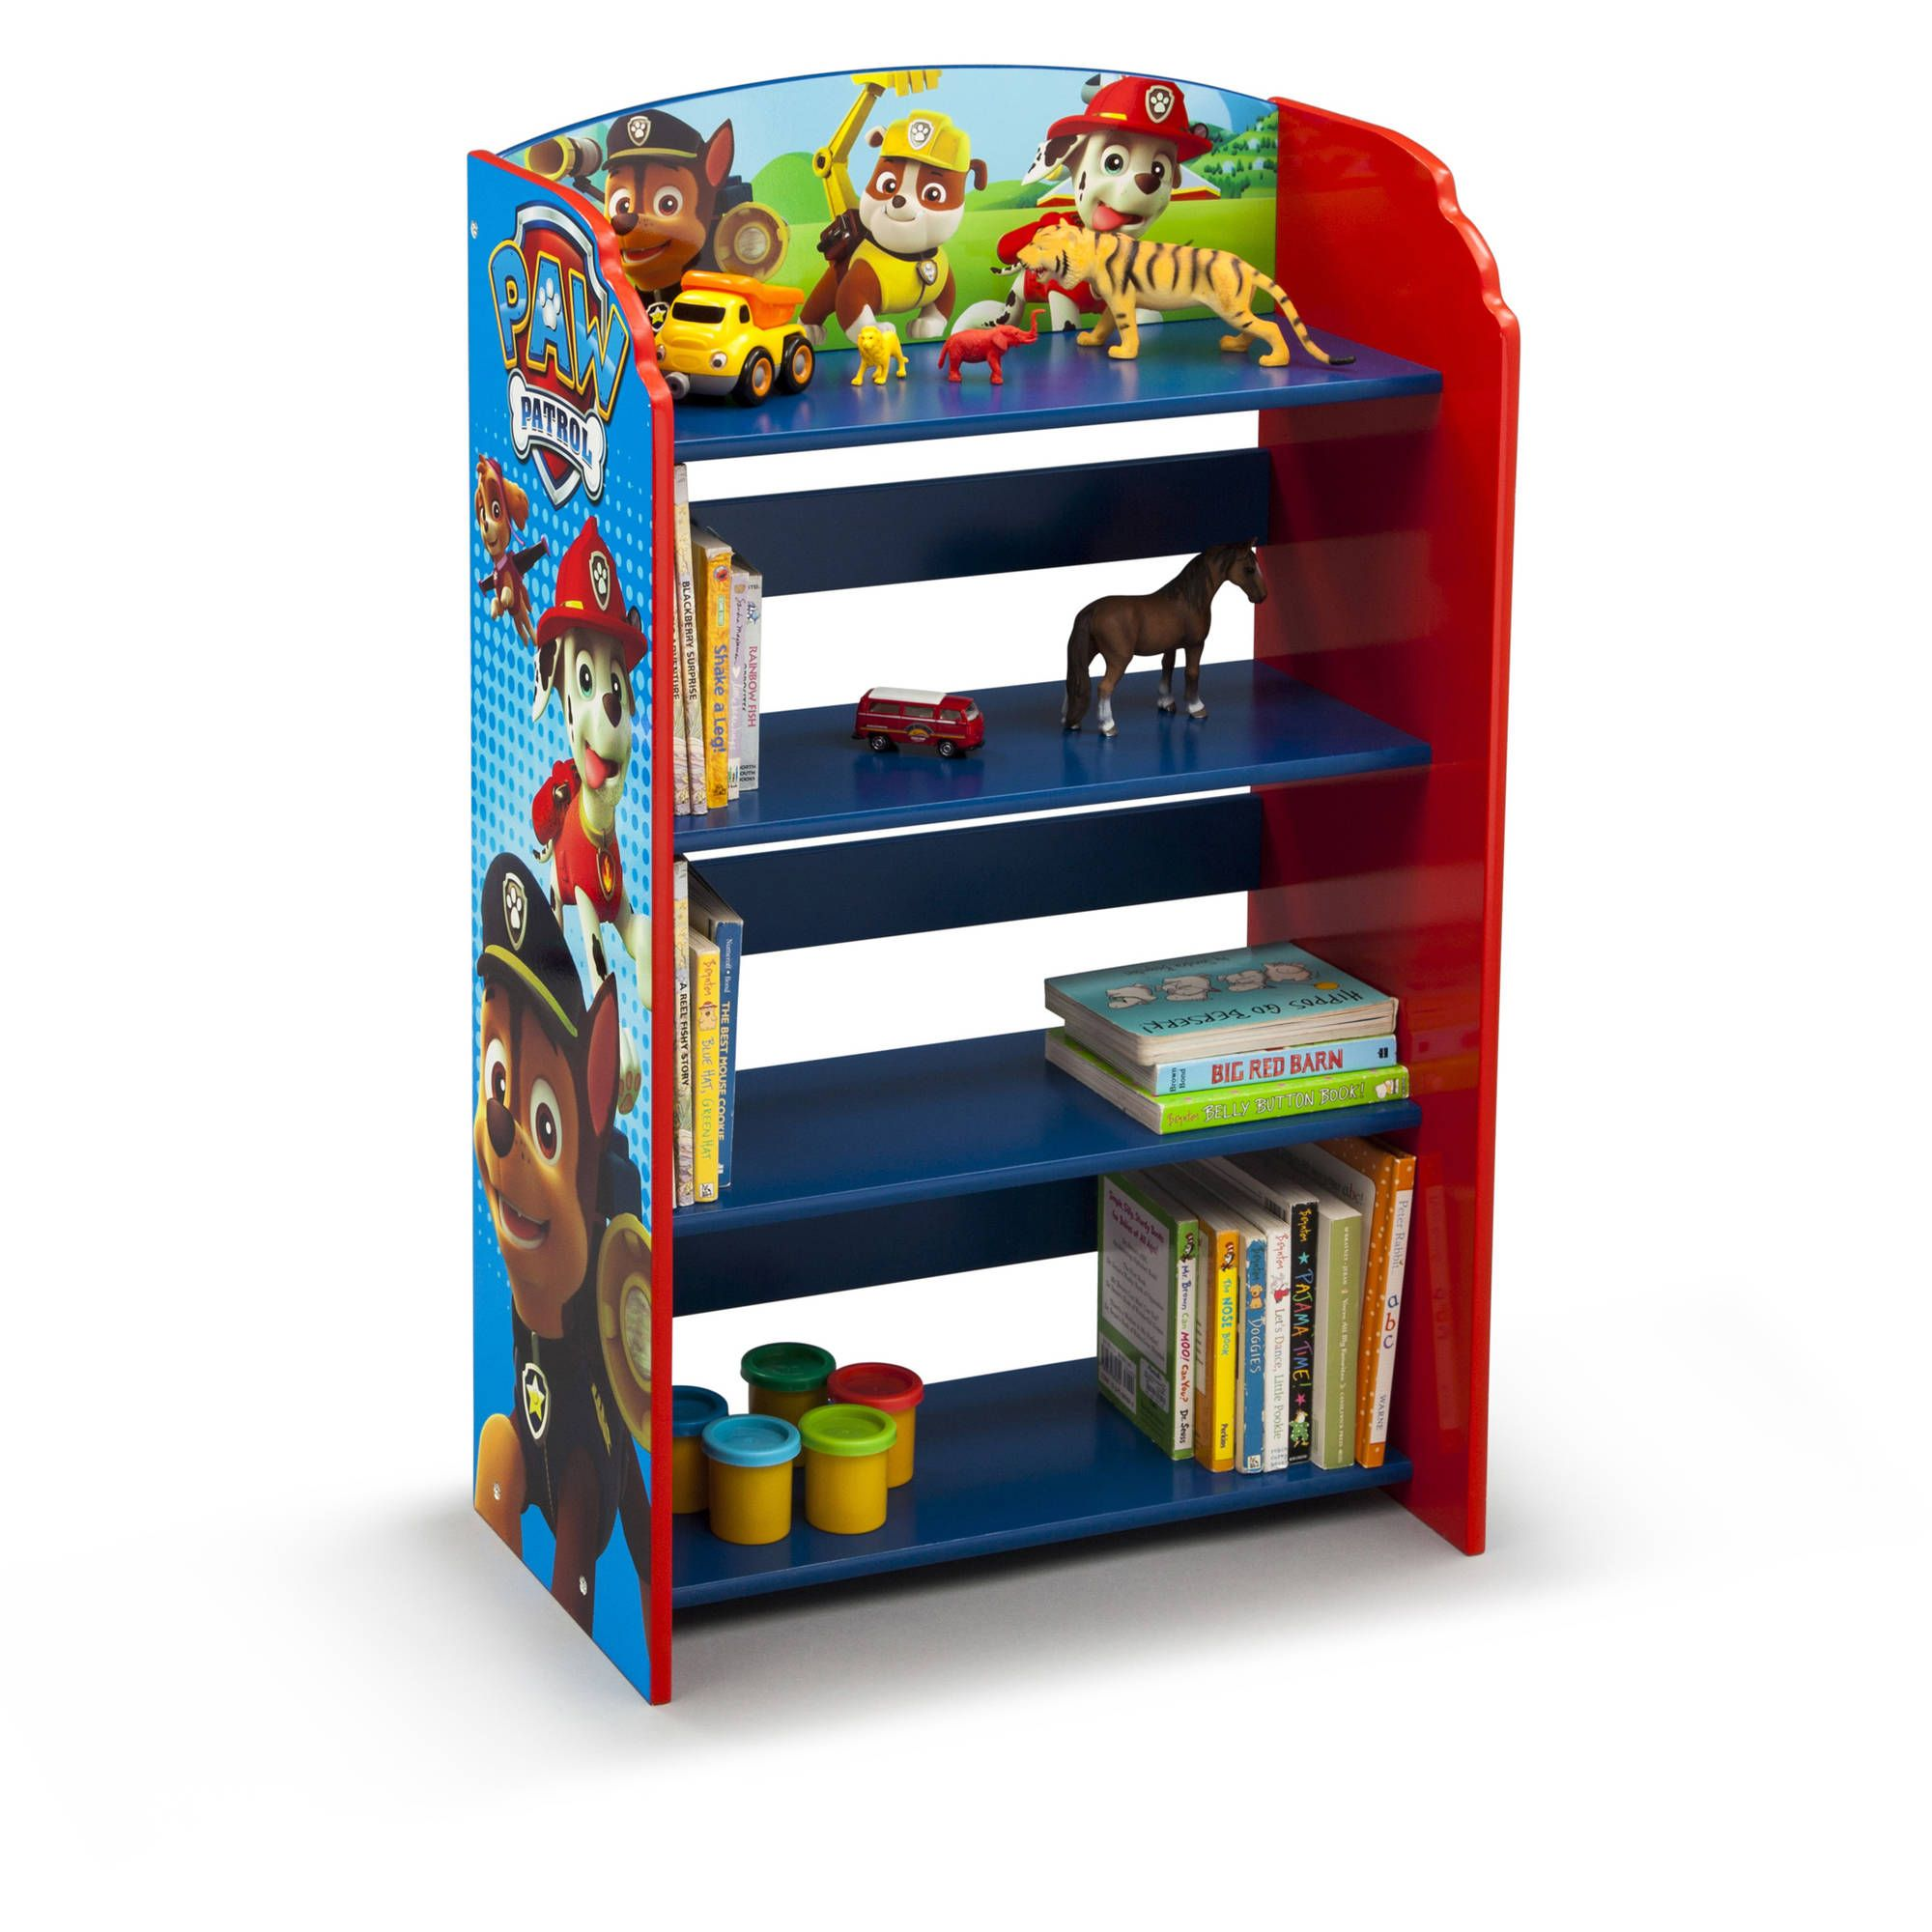 Delta Children PAW Patrol Bookshelf